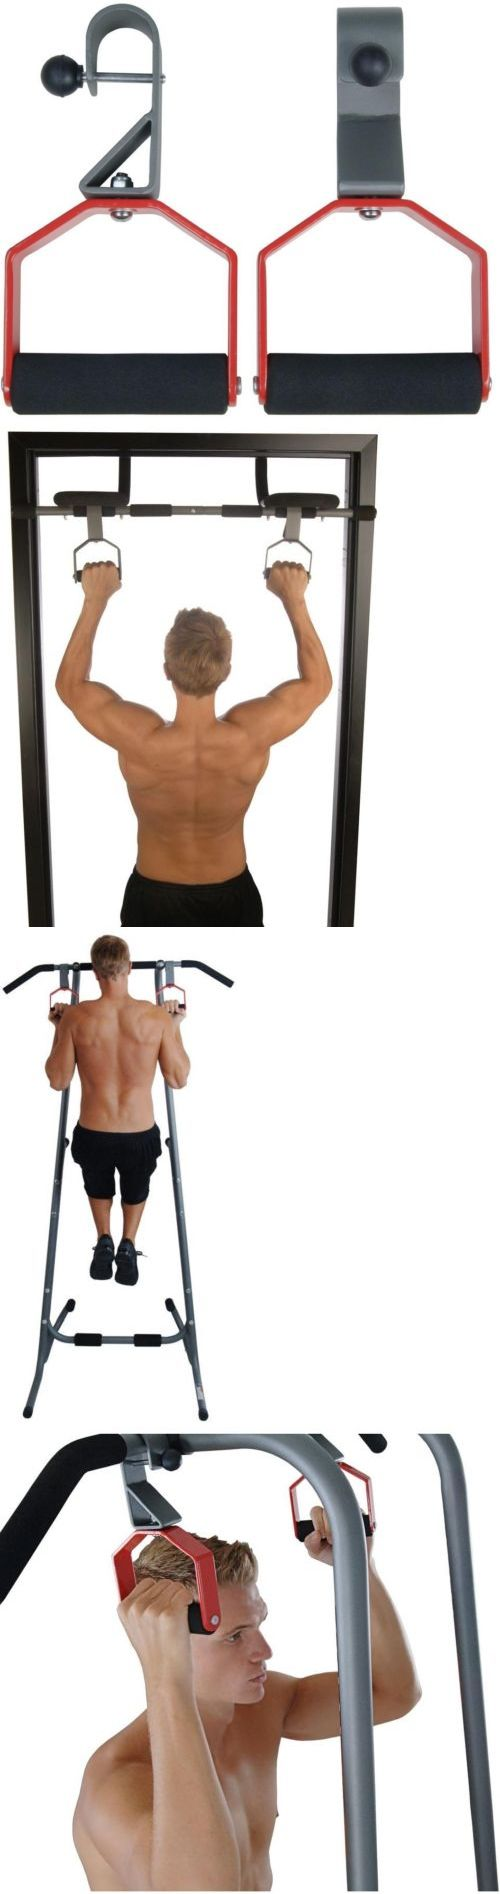 Push Up Stands 158925: Rotating Pull Up Handles 50-0001 Door Gym Power Tower Stable Pull Up Bar Workout BUY IT NOW ONLY: $38.3